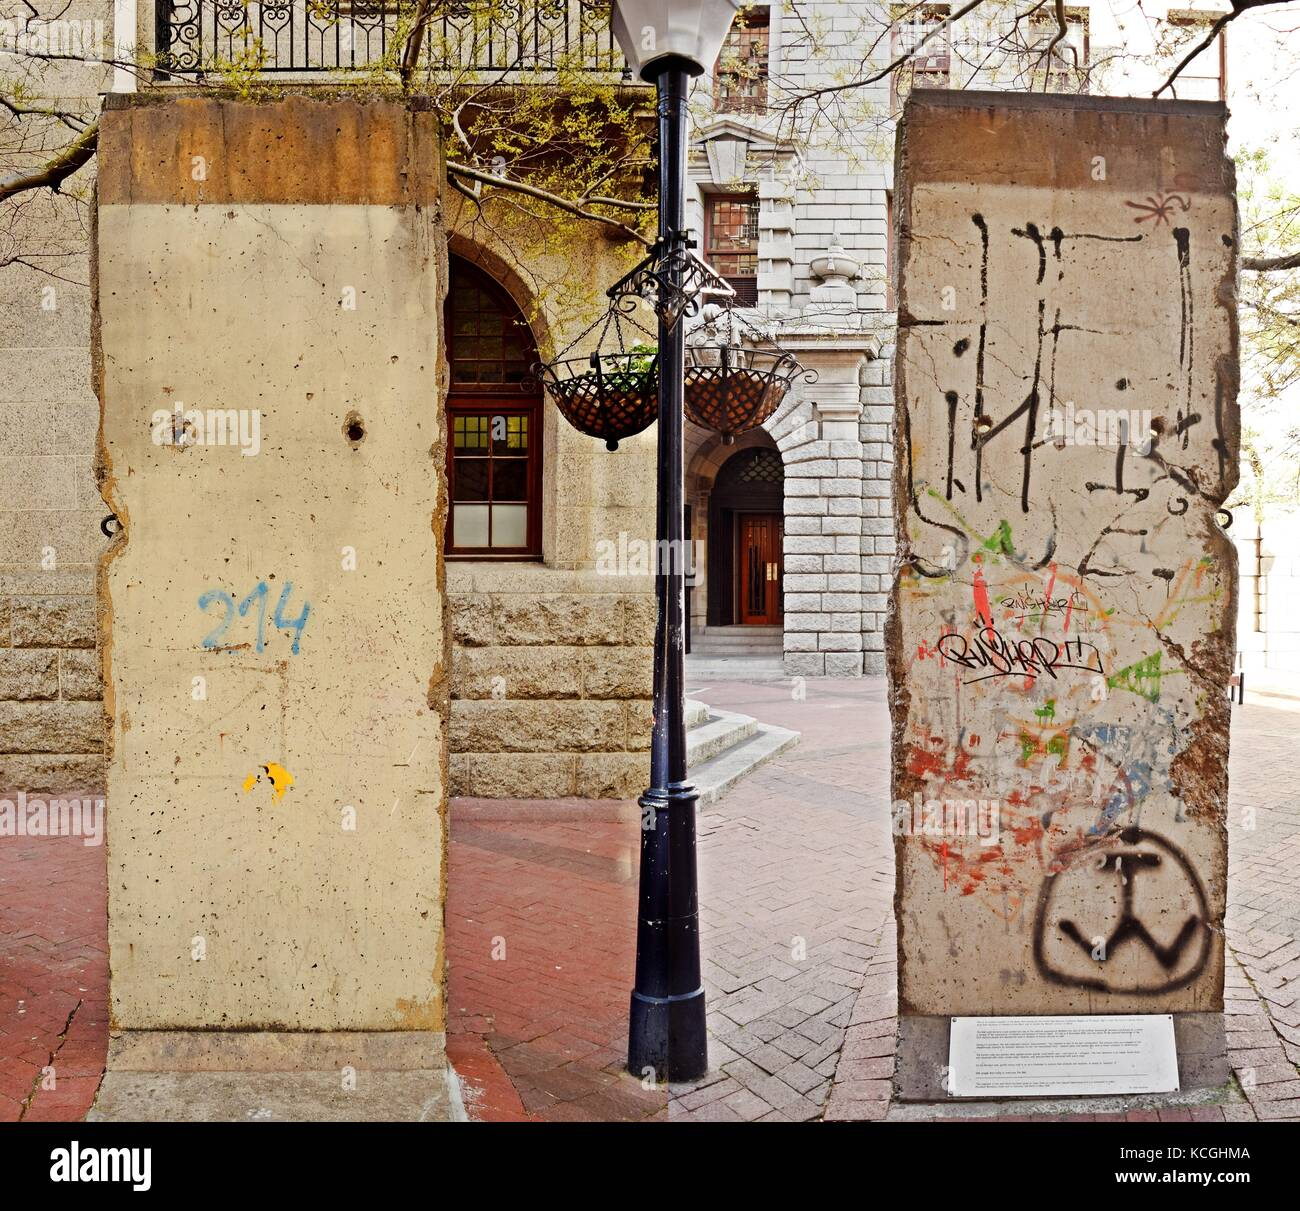 A concrete slab of the Berlin Wall, as a monument in Cape Town. The two sides of the slab show the sides of East - Stock Image